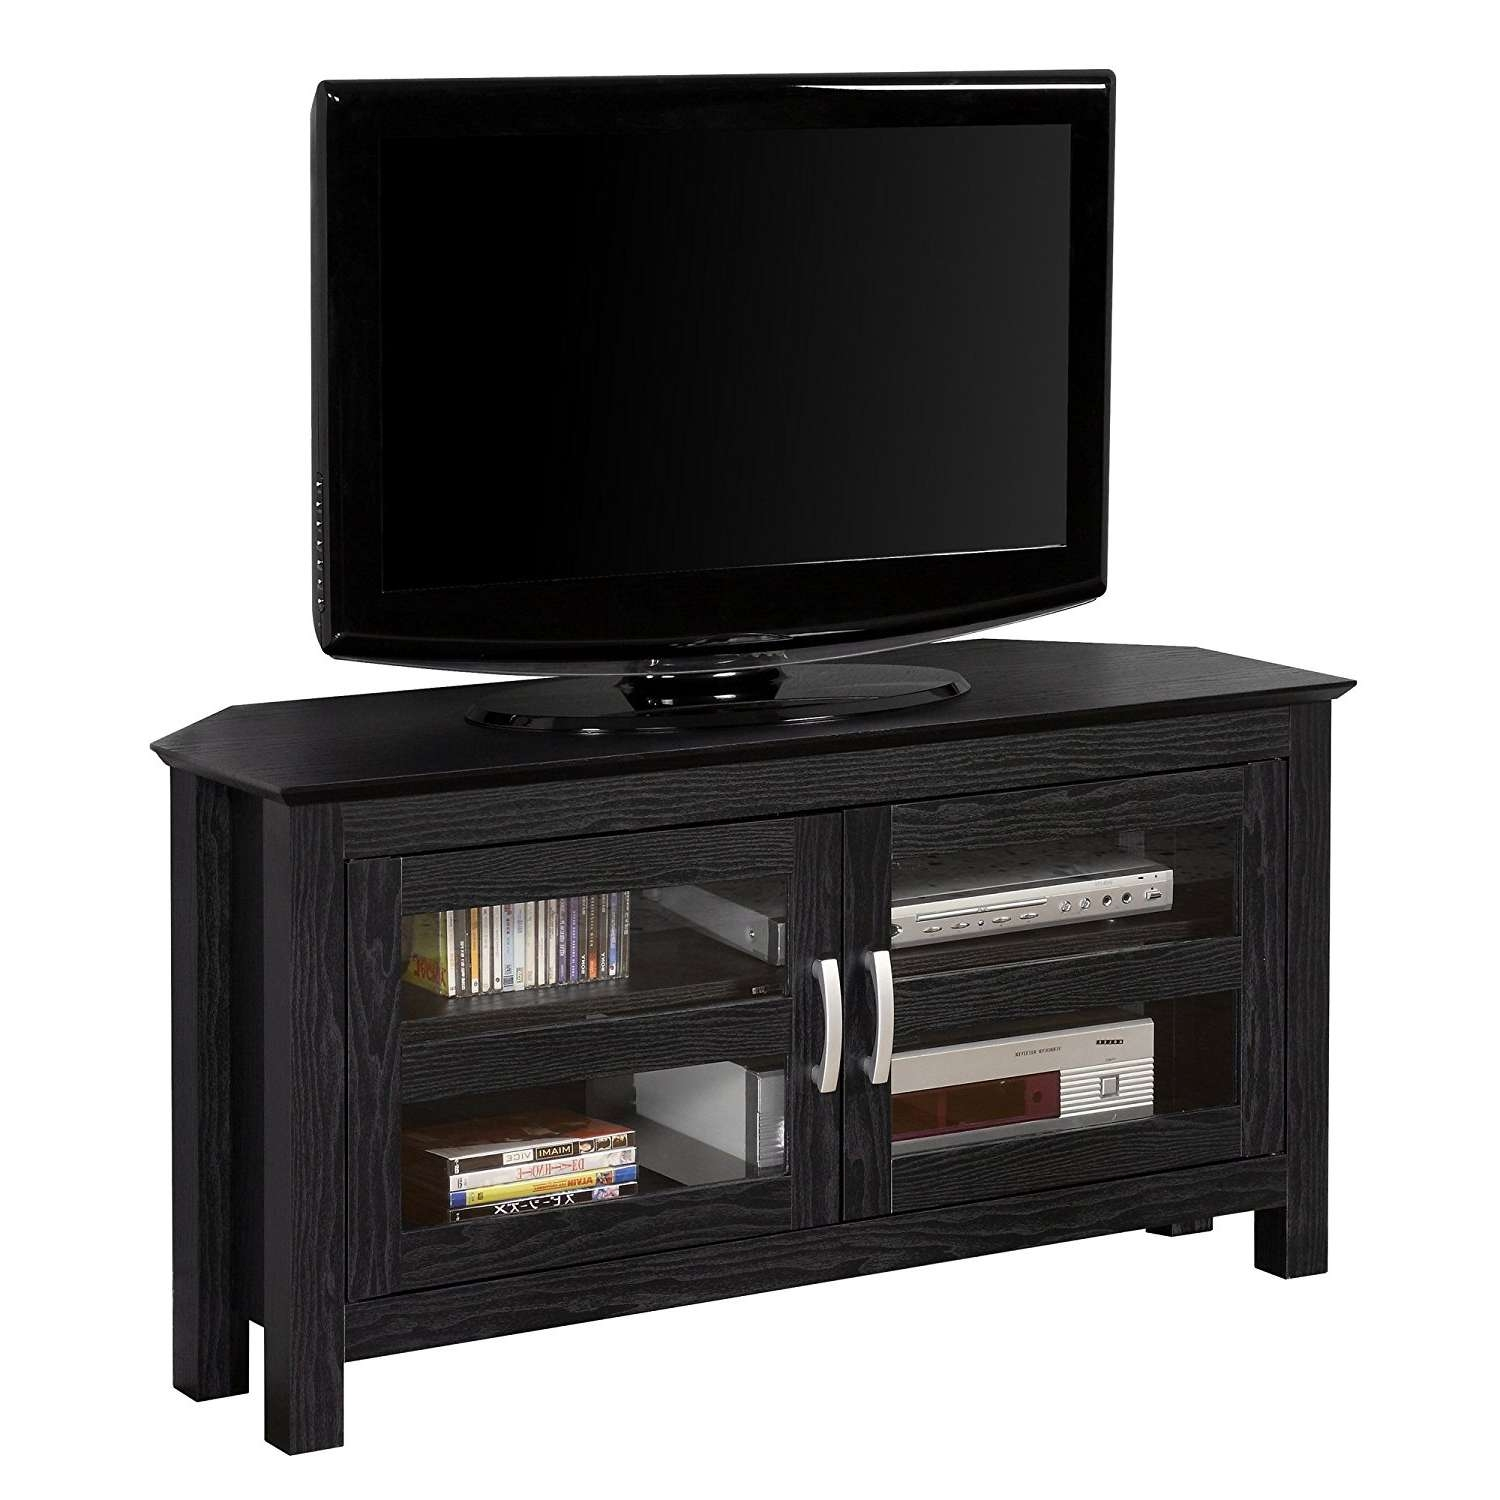 Tv Stand : 40 Stunning Small Black Tv Stand Photo Inspirations In Small Black Tv Cabinets (View 12 of 20)